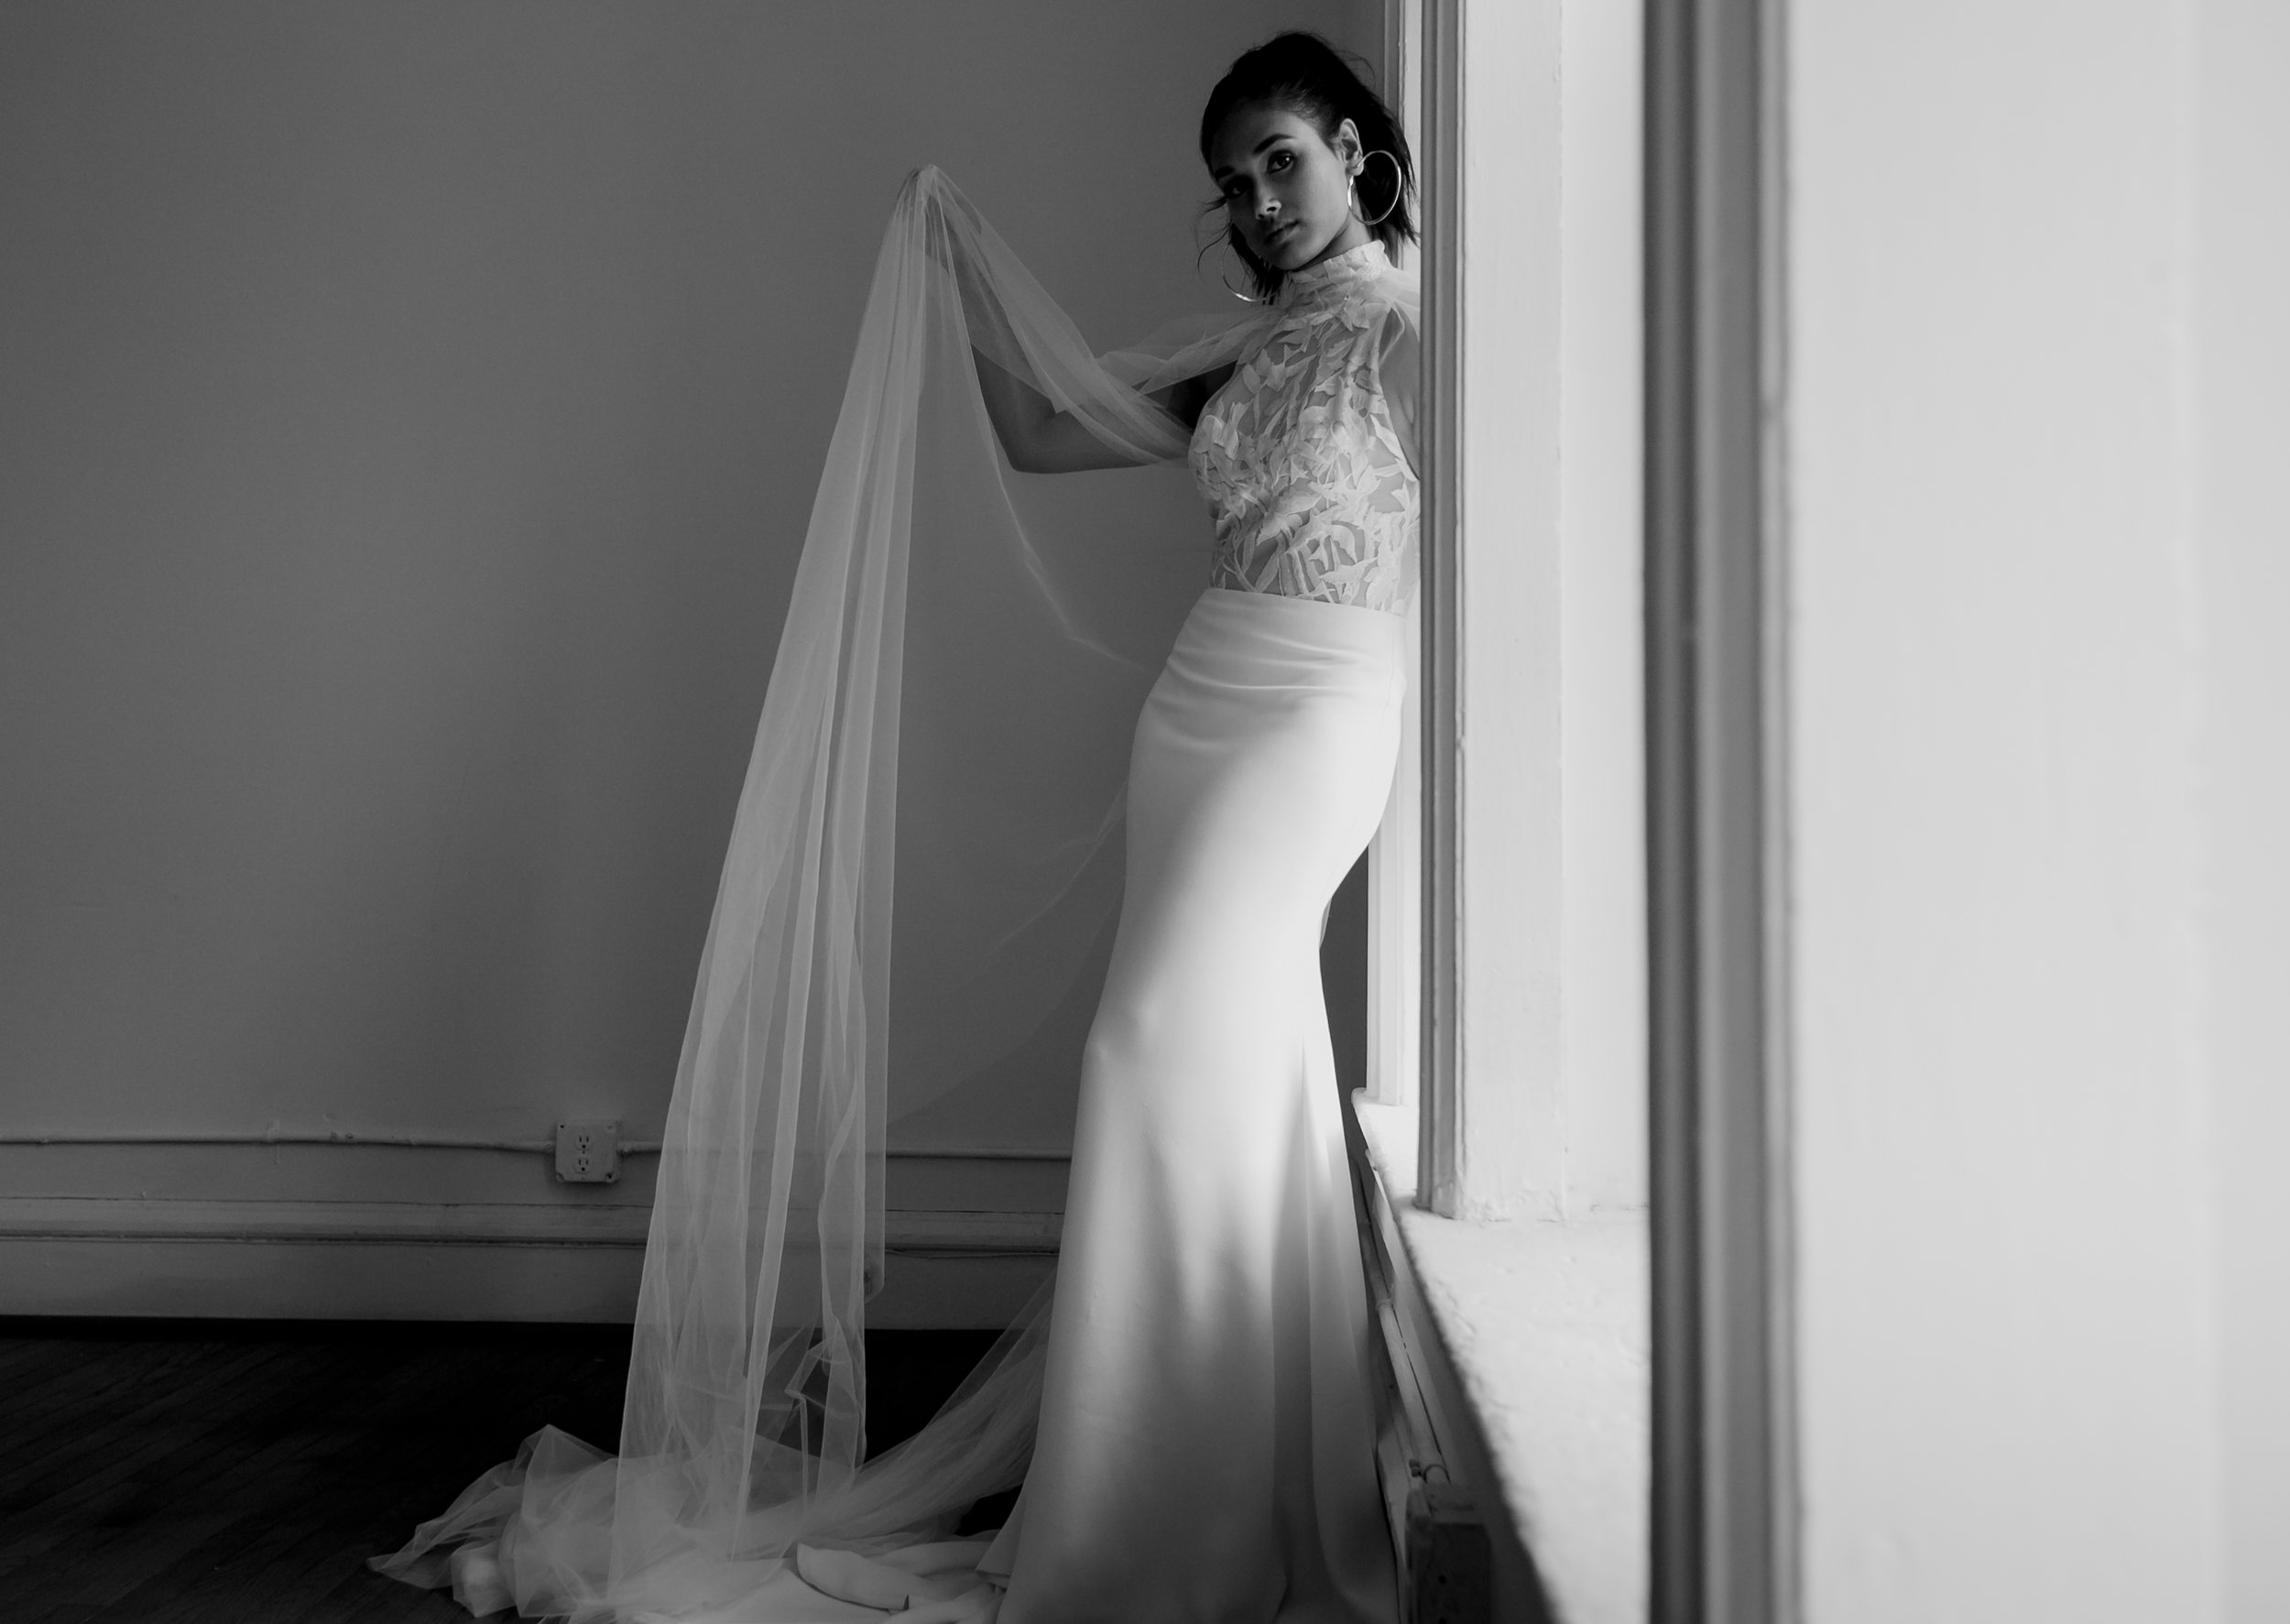 Chicago-Bride-Wedding-Dress-Varca-Edited-300.jpg